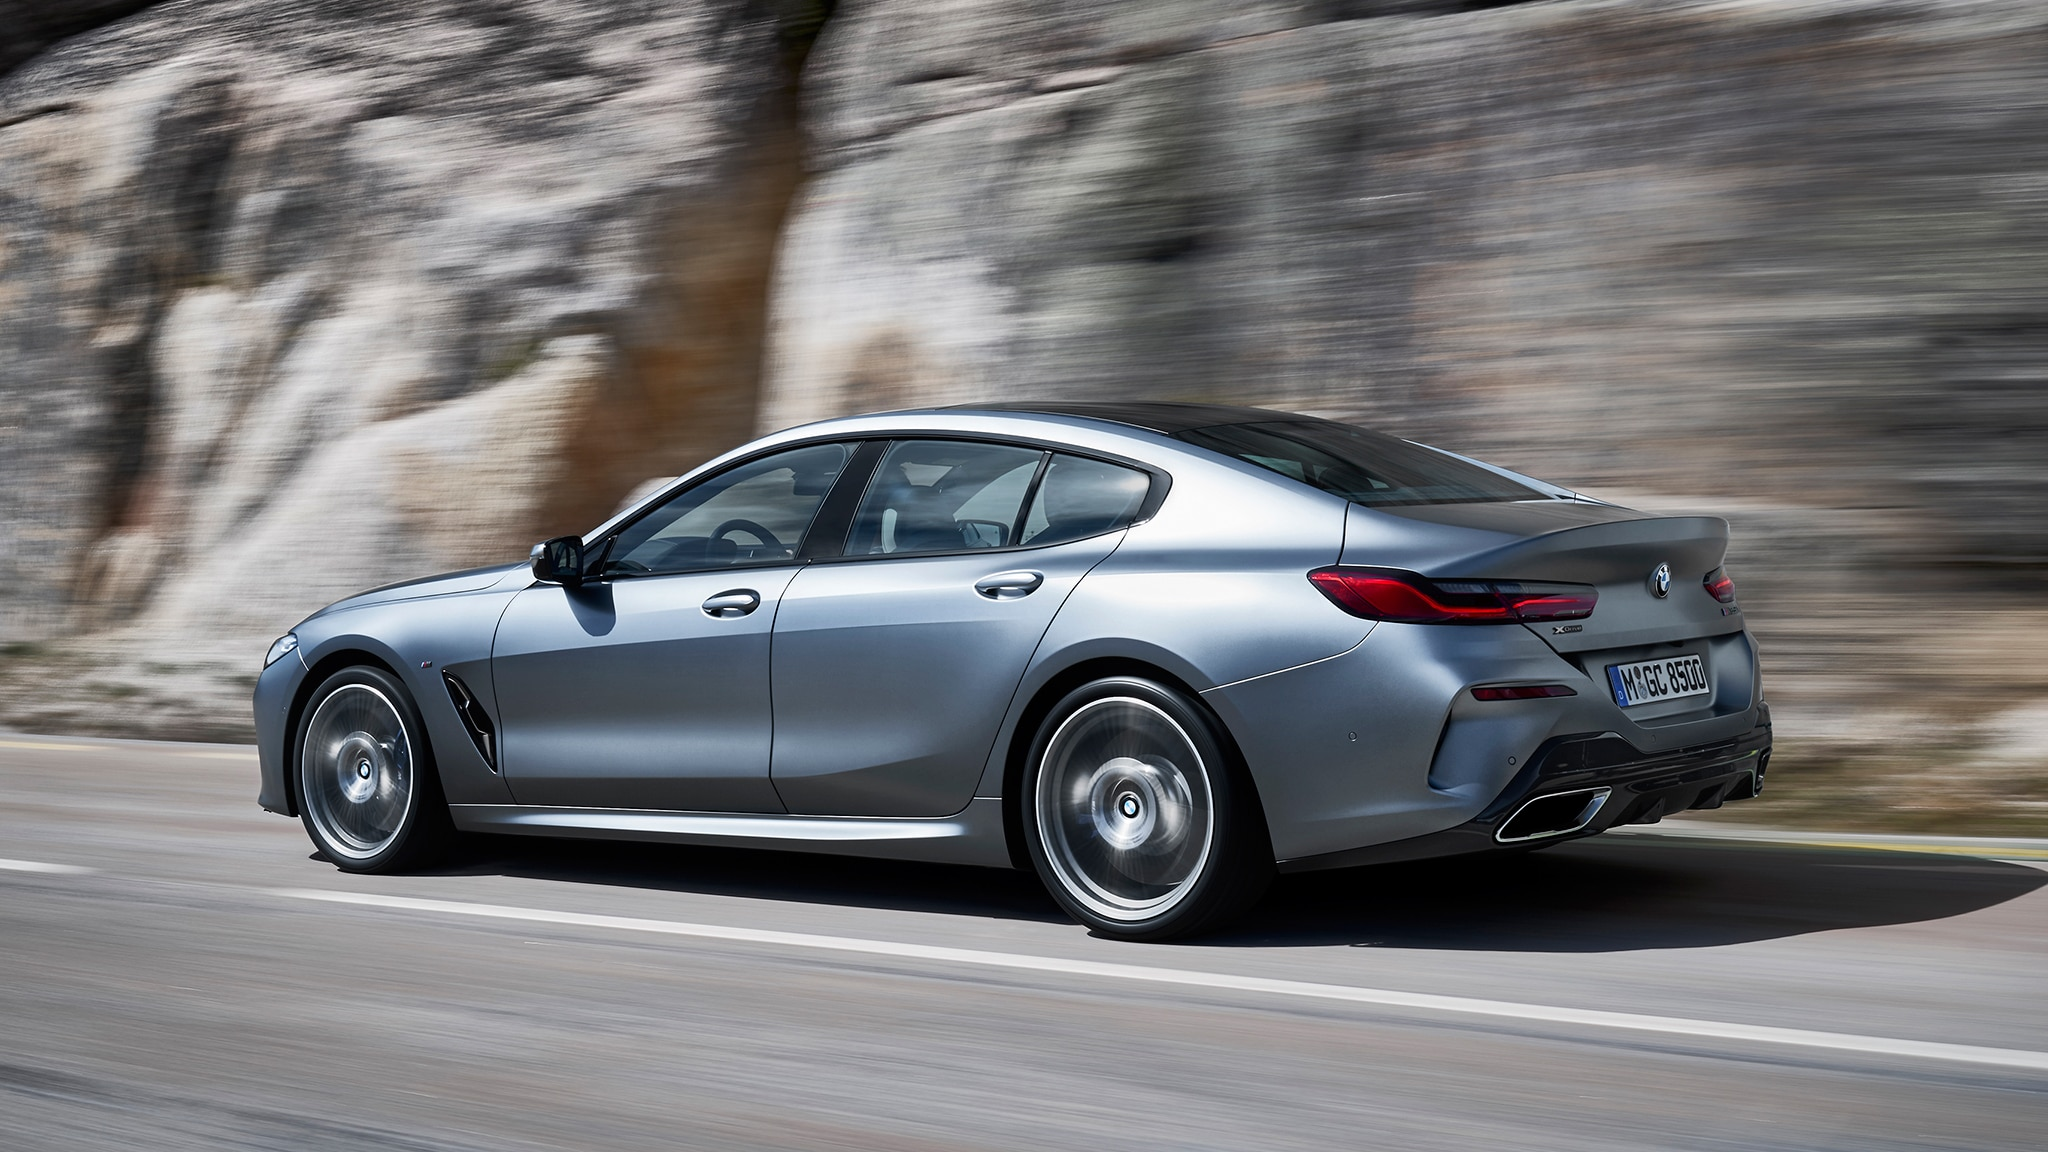 2020 BMW 8 Series Gran Coupe Is Here and It's a Stunner ...